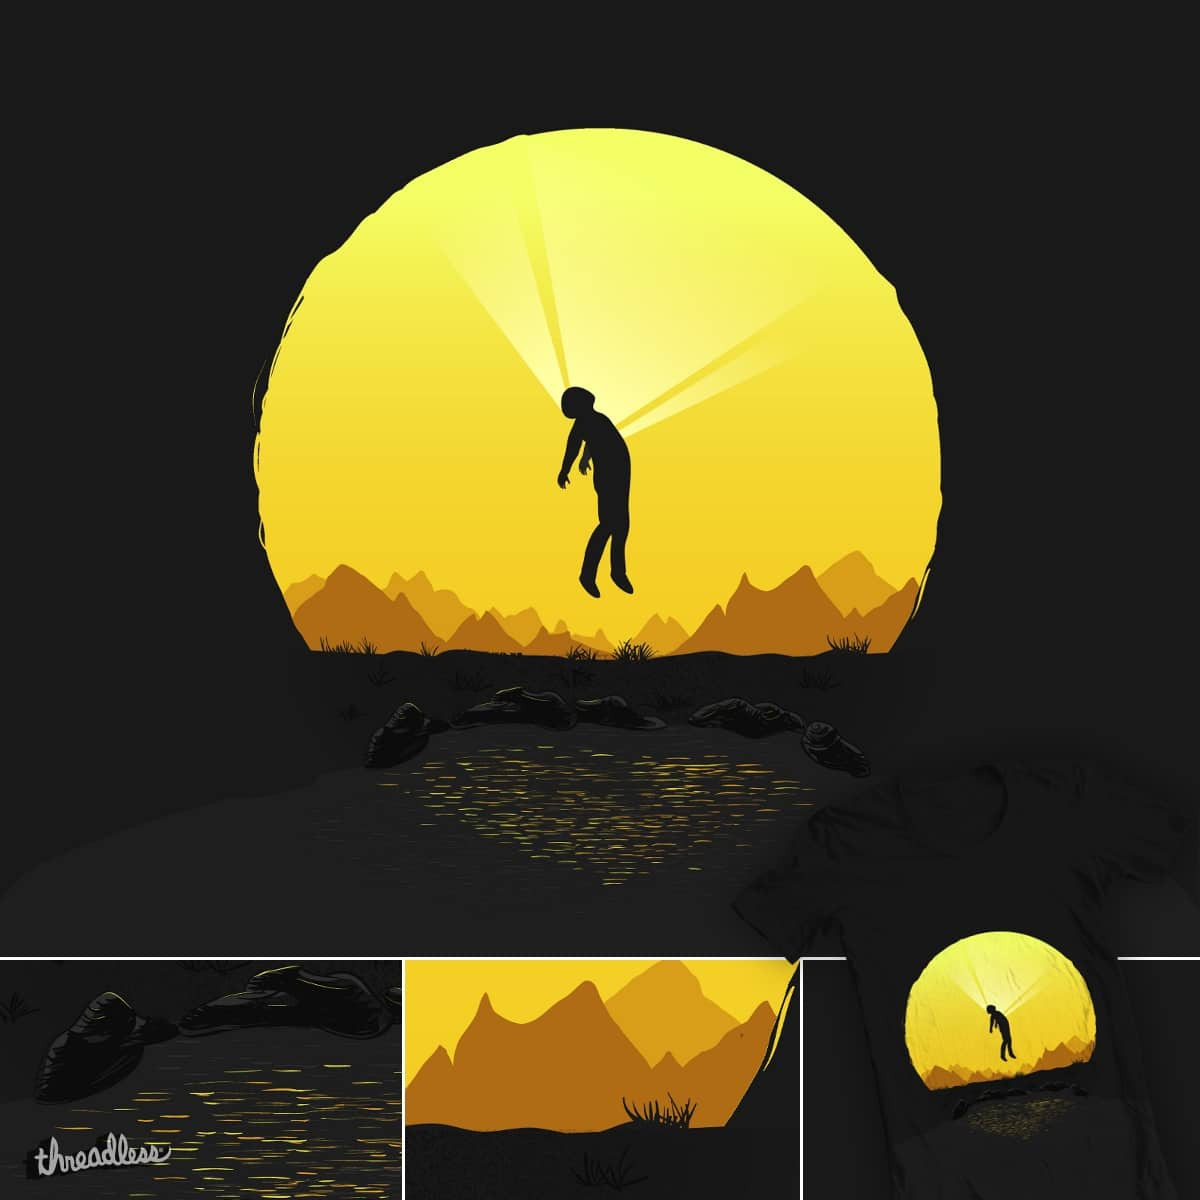 Rise by Bobsworld on Threadless